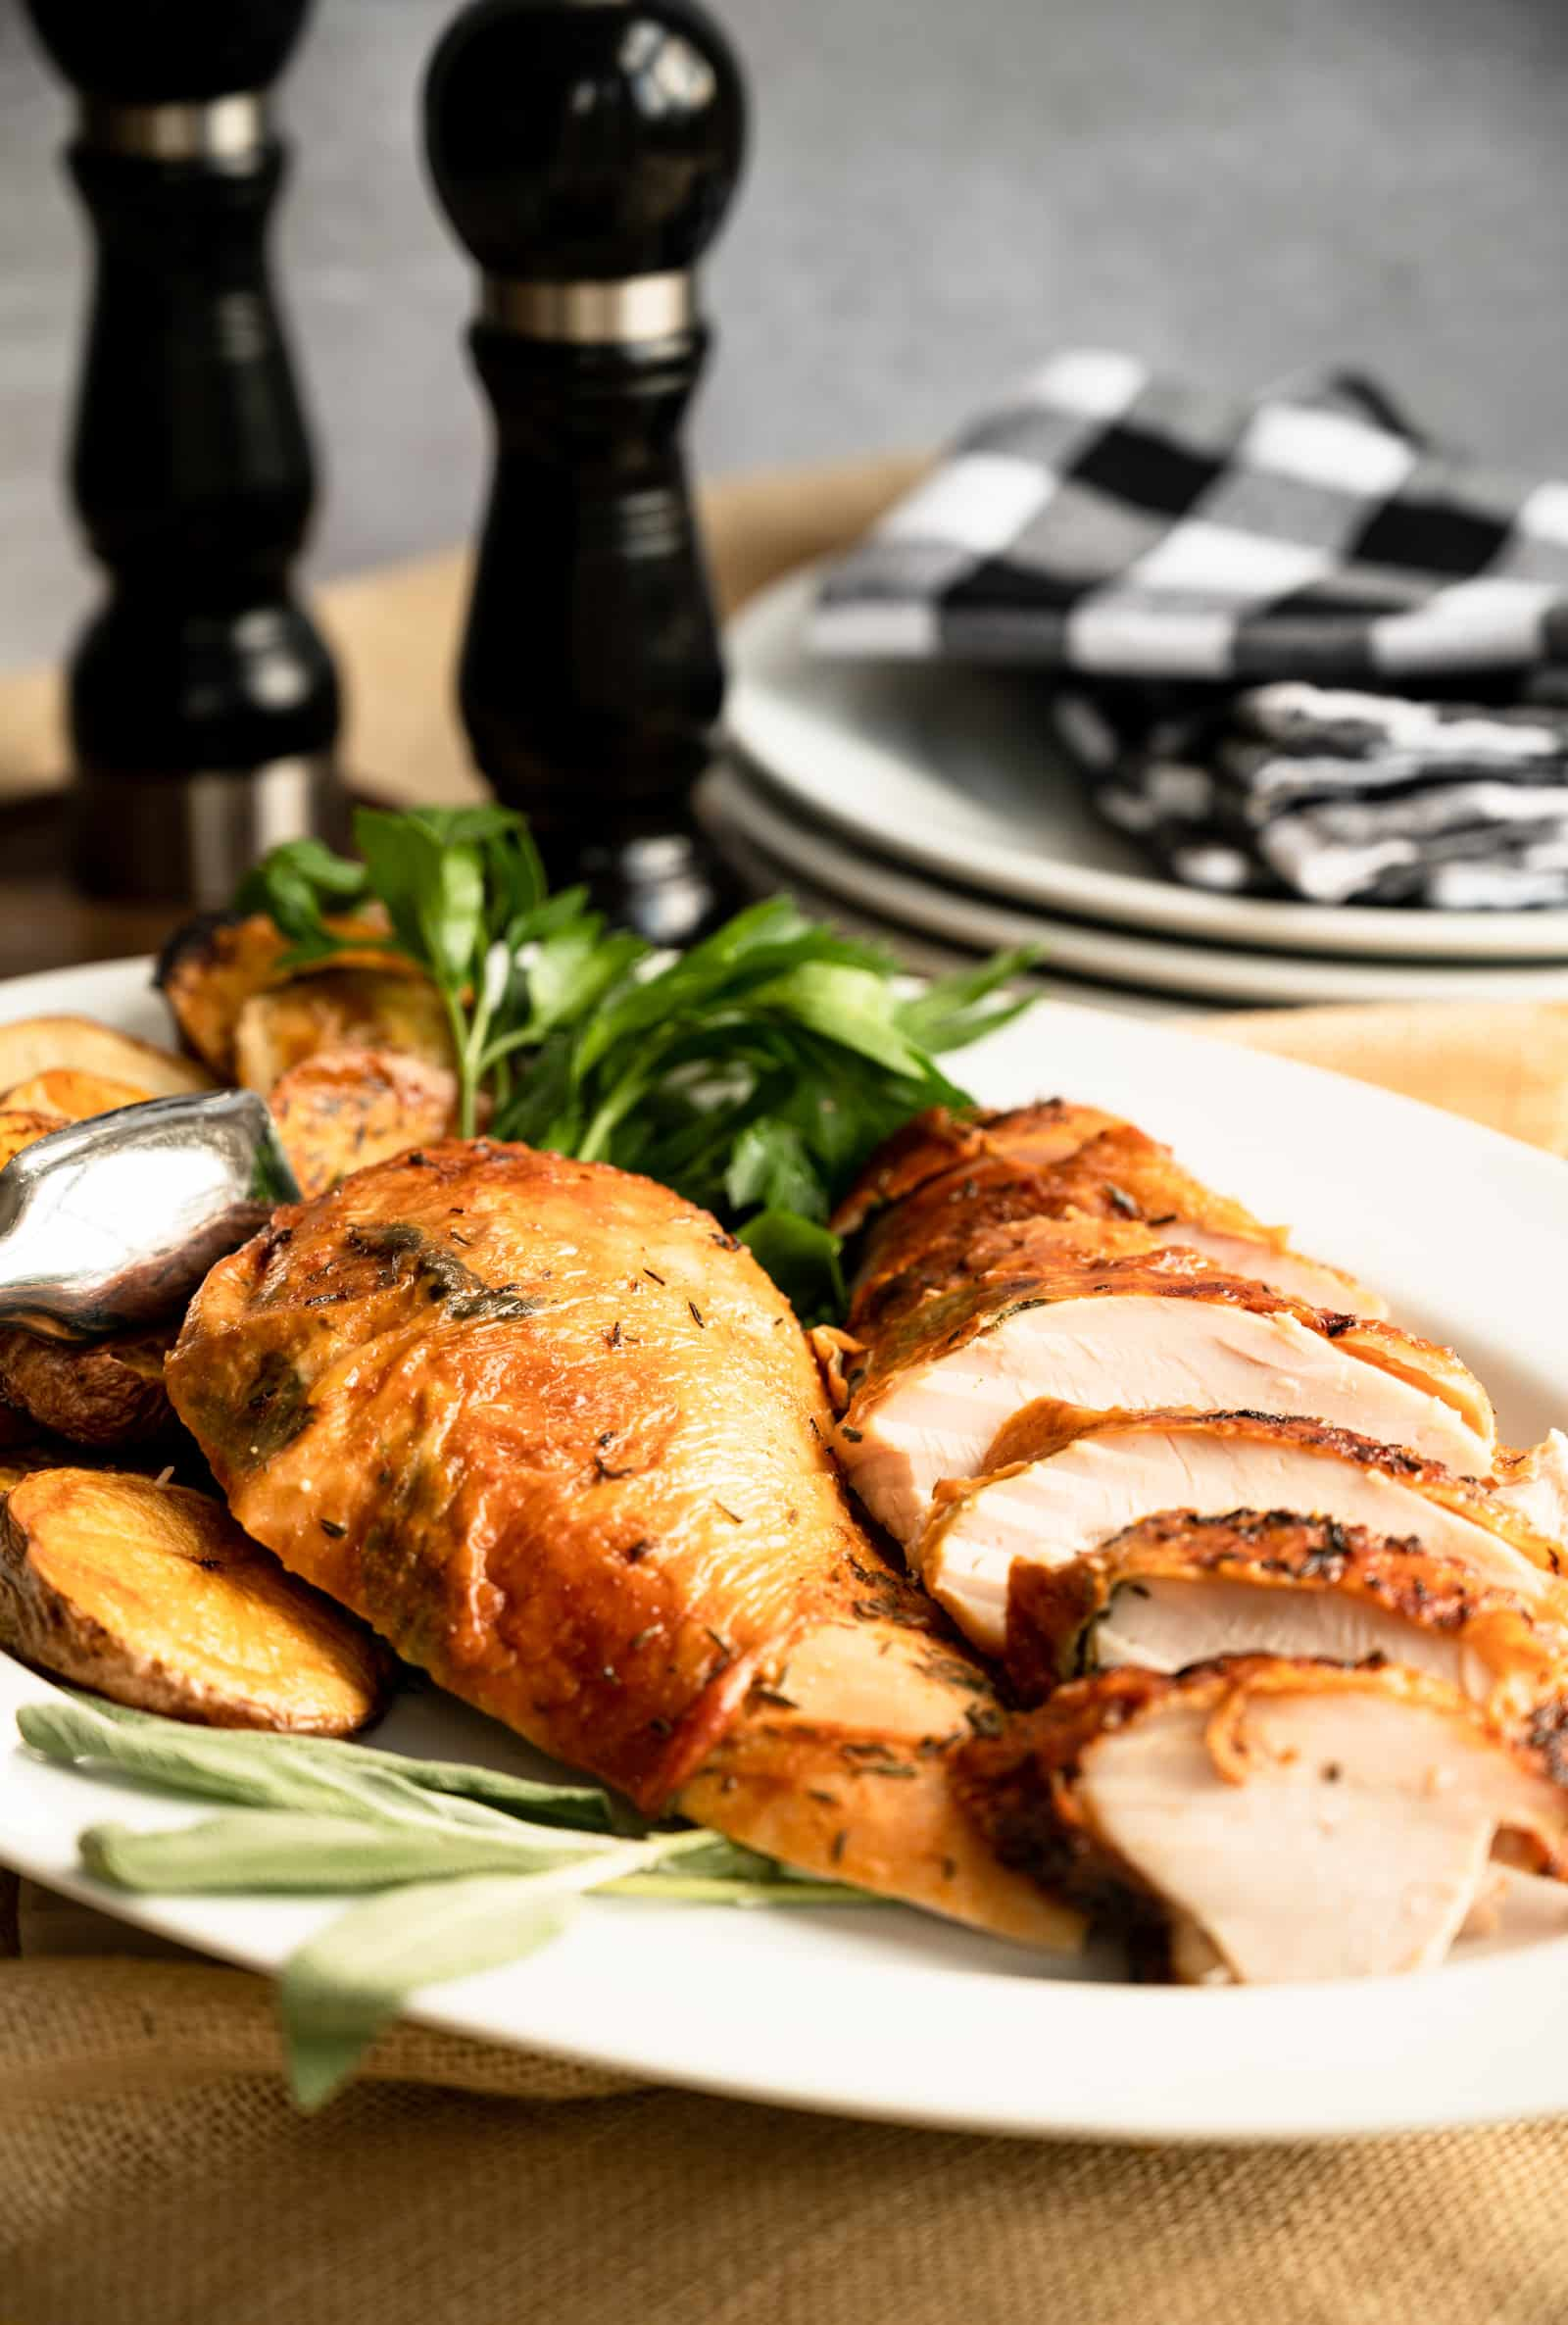 white platter of sliced roast turkey breast with the skin on it and some sage and parsley